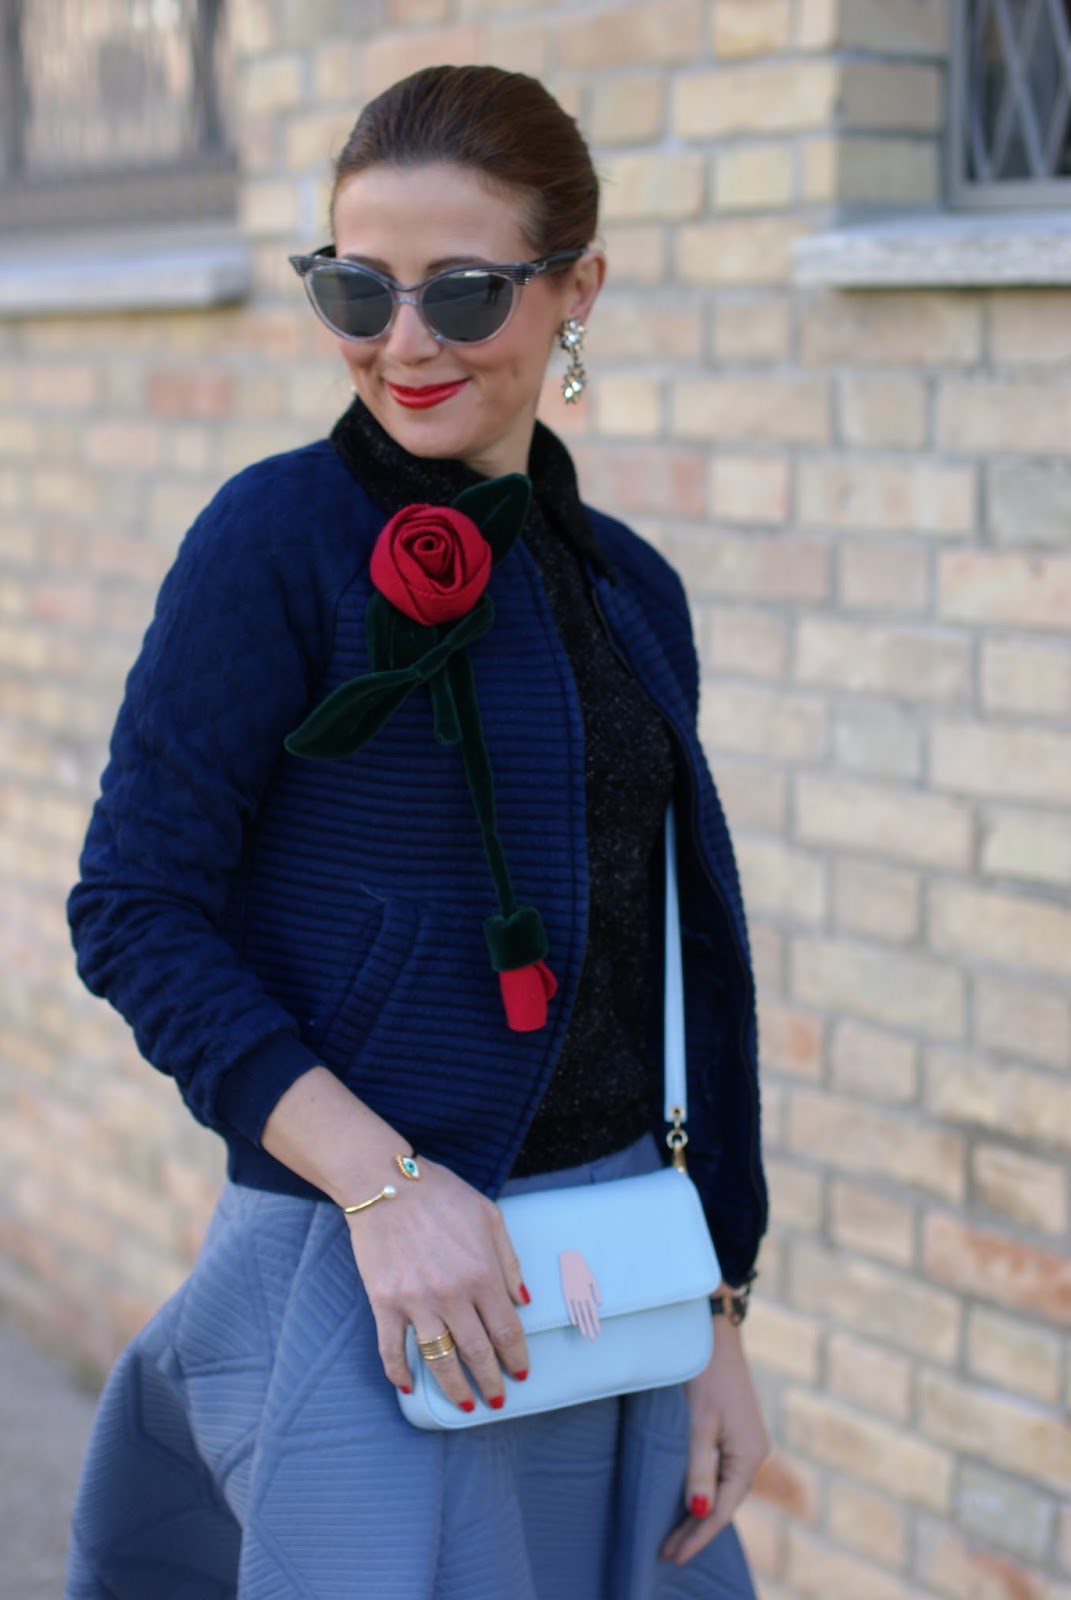 Valentine's day romantic outfit with bomber jacket, asymmetrical midi skirt, red roses handmade brooch on Fashion and Cookies fashion blog, fashion blogger style